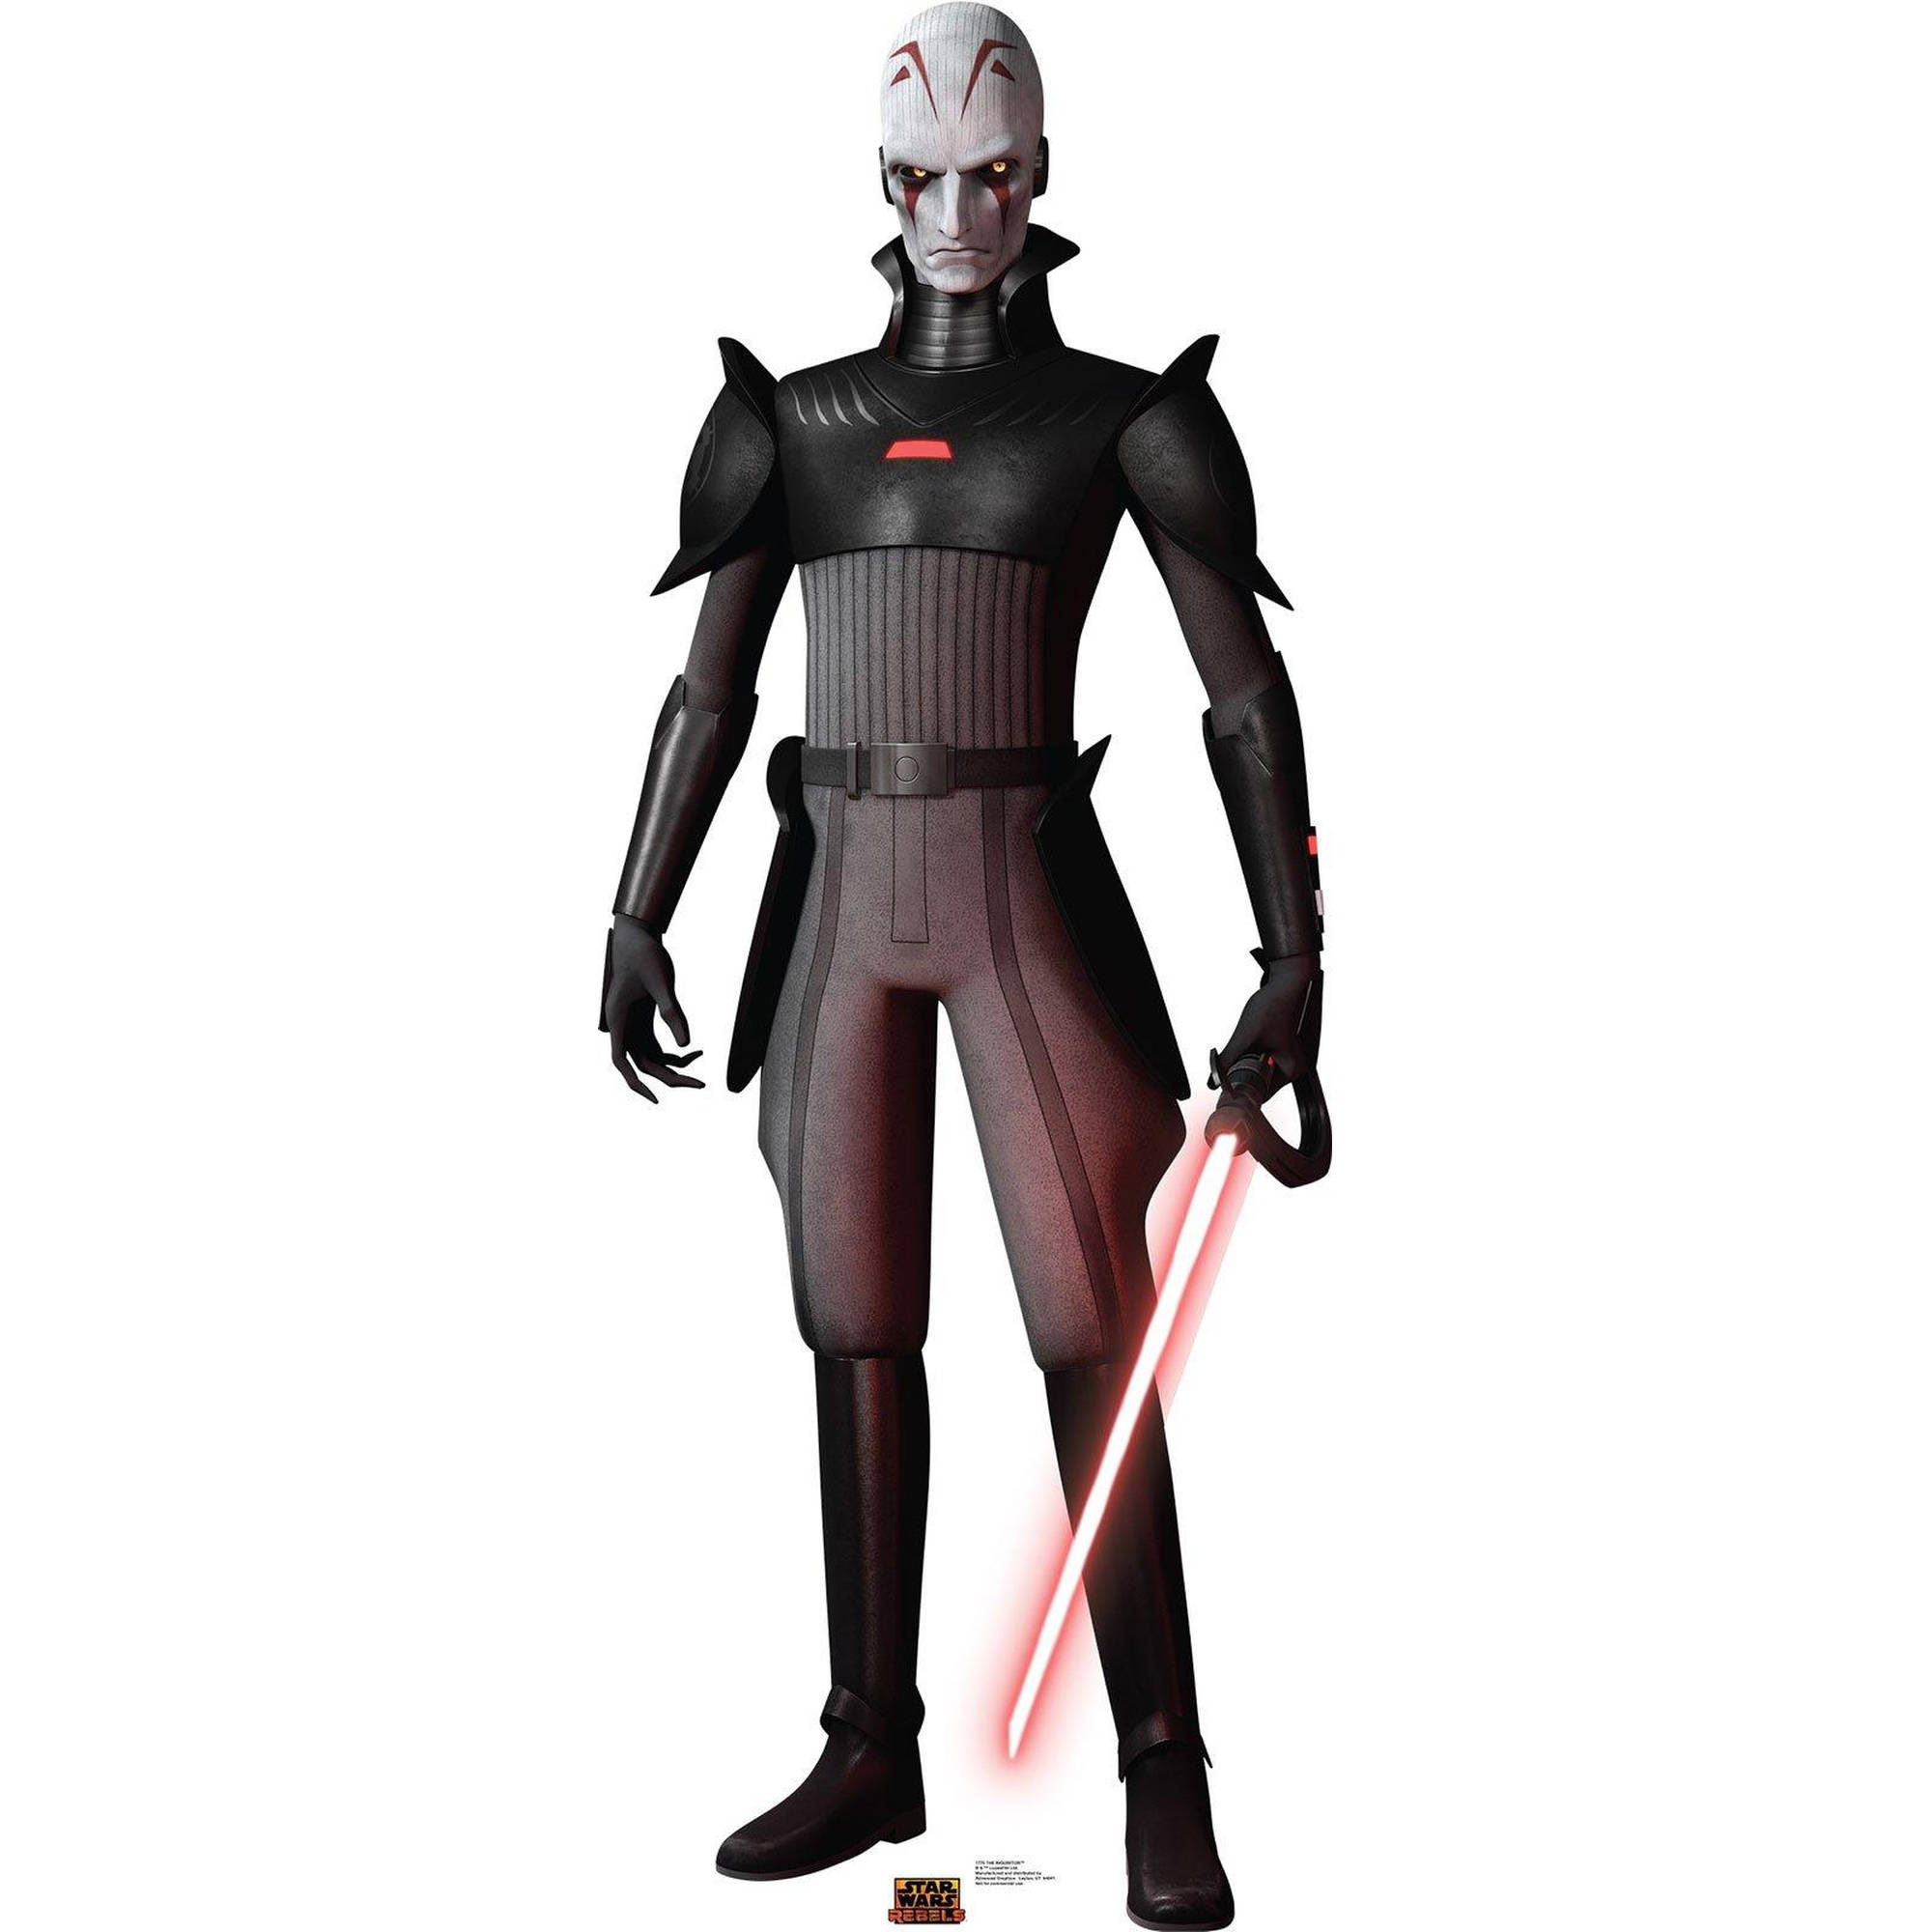 Star Wars Rebels The Inquisitor Stand Up, 6' Tall